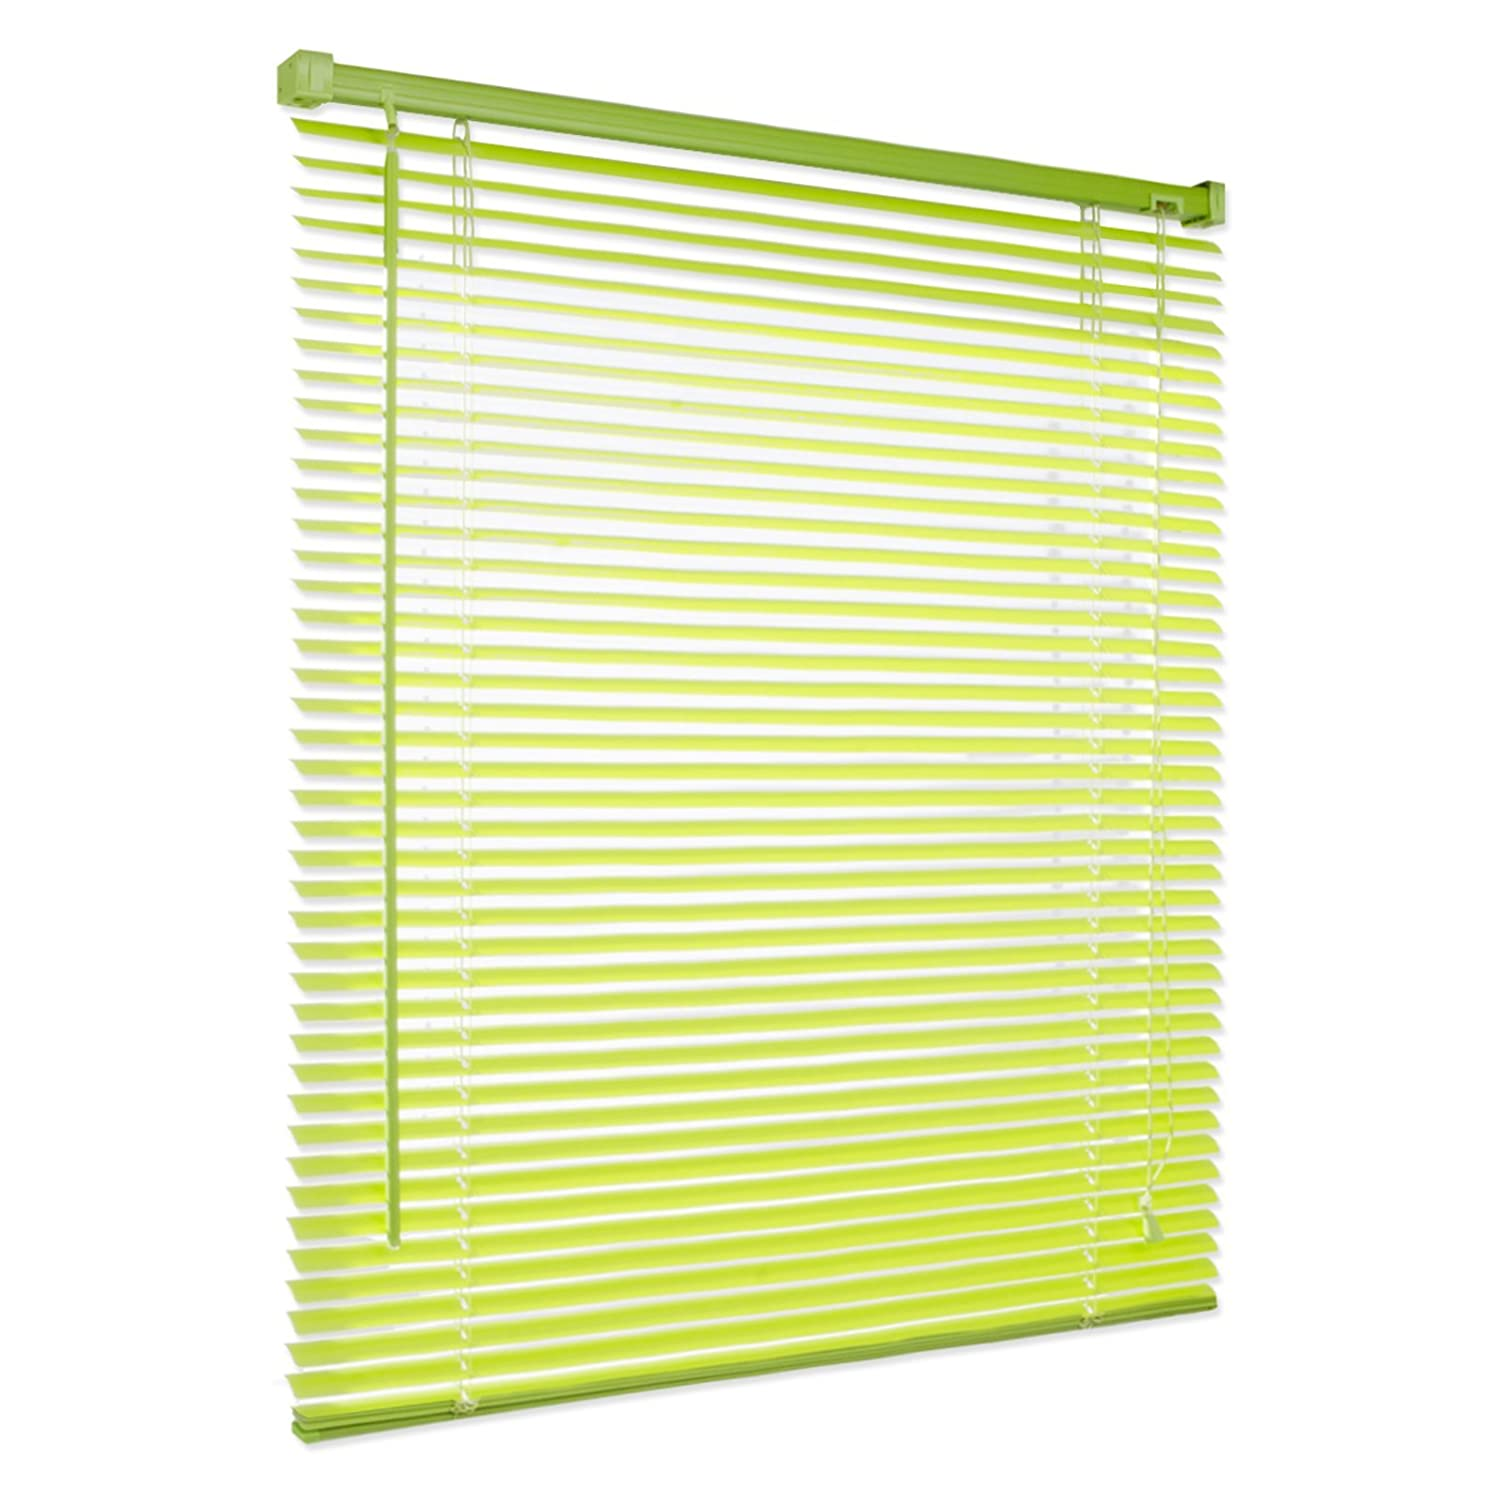 casa pura® Venetian Blind, Jalousie Vista - Lime Green (55 x 200 cm) | Fully Adjustable, 16 Sizes Available